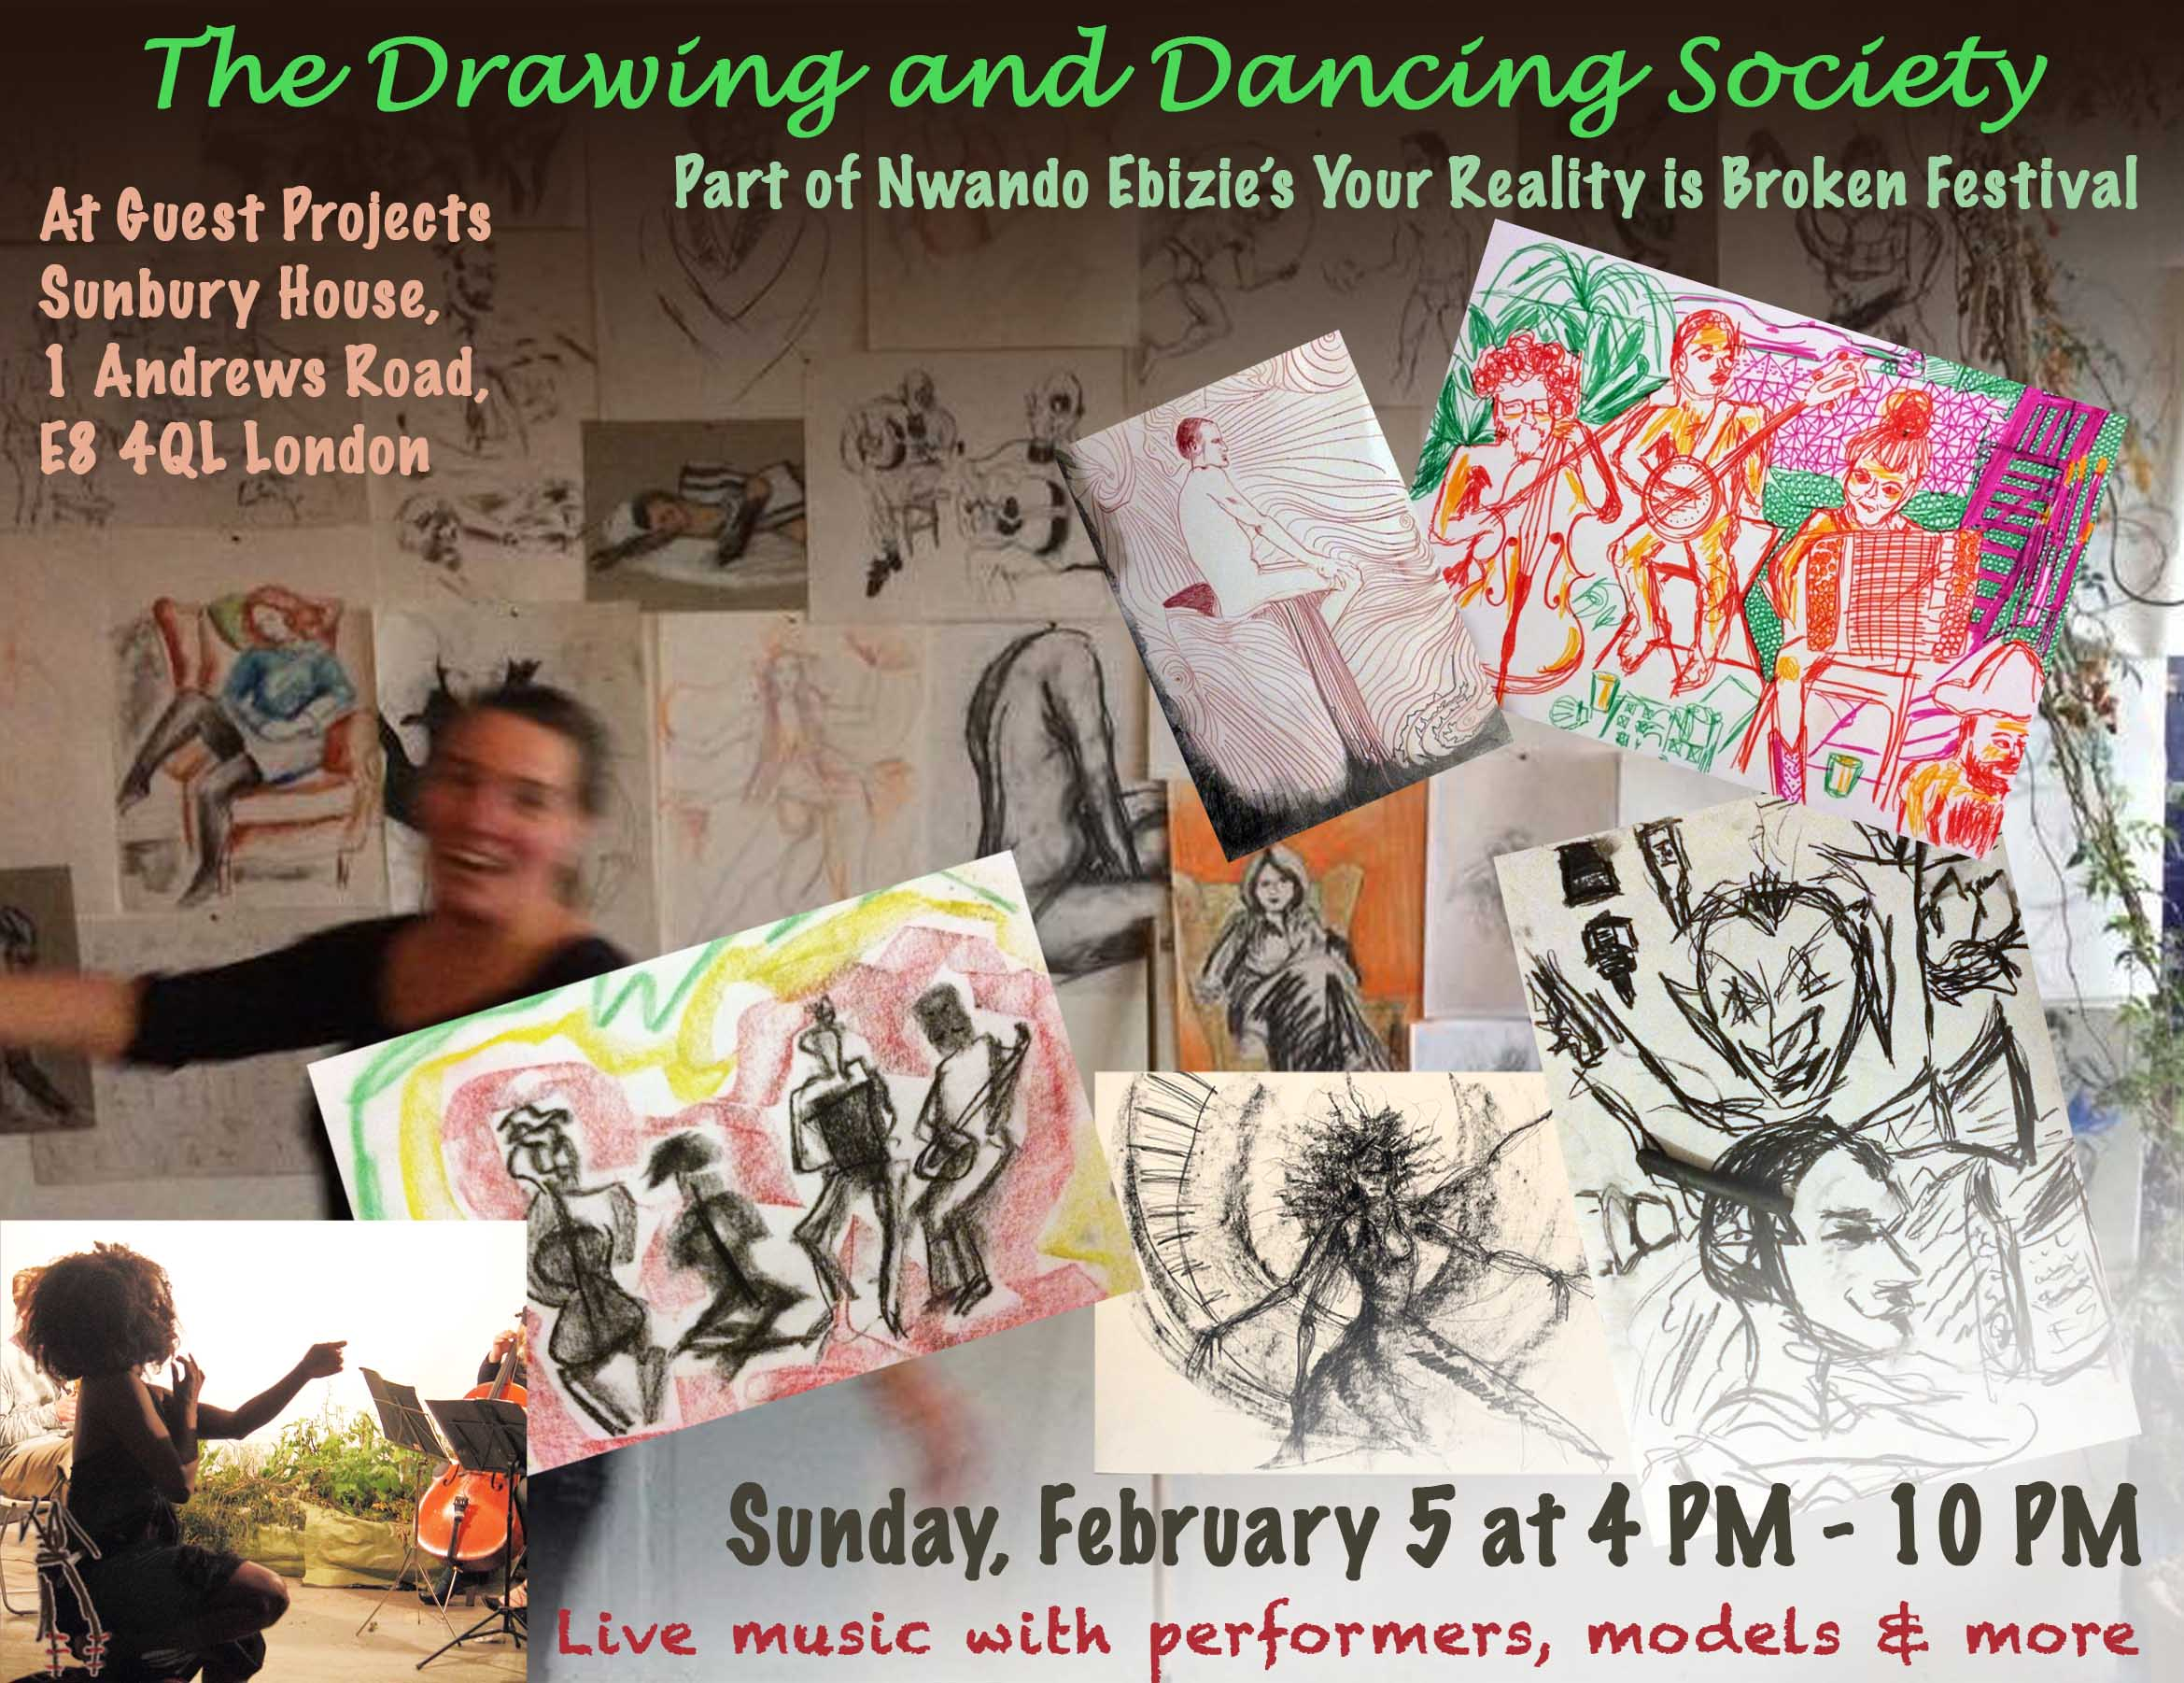 Drawing & Dancing poster 5 Feb. 17